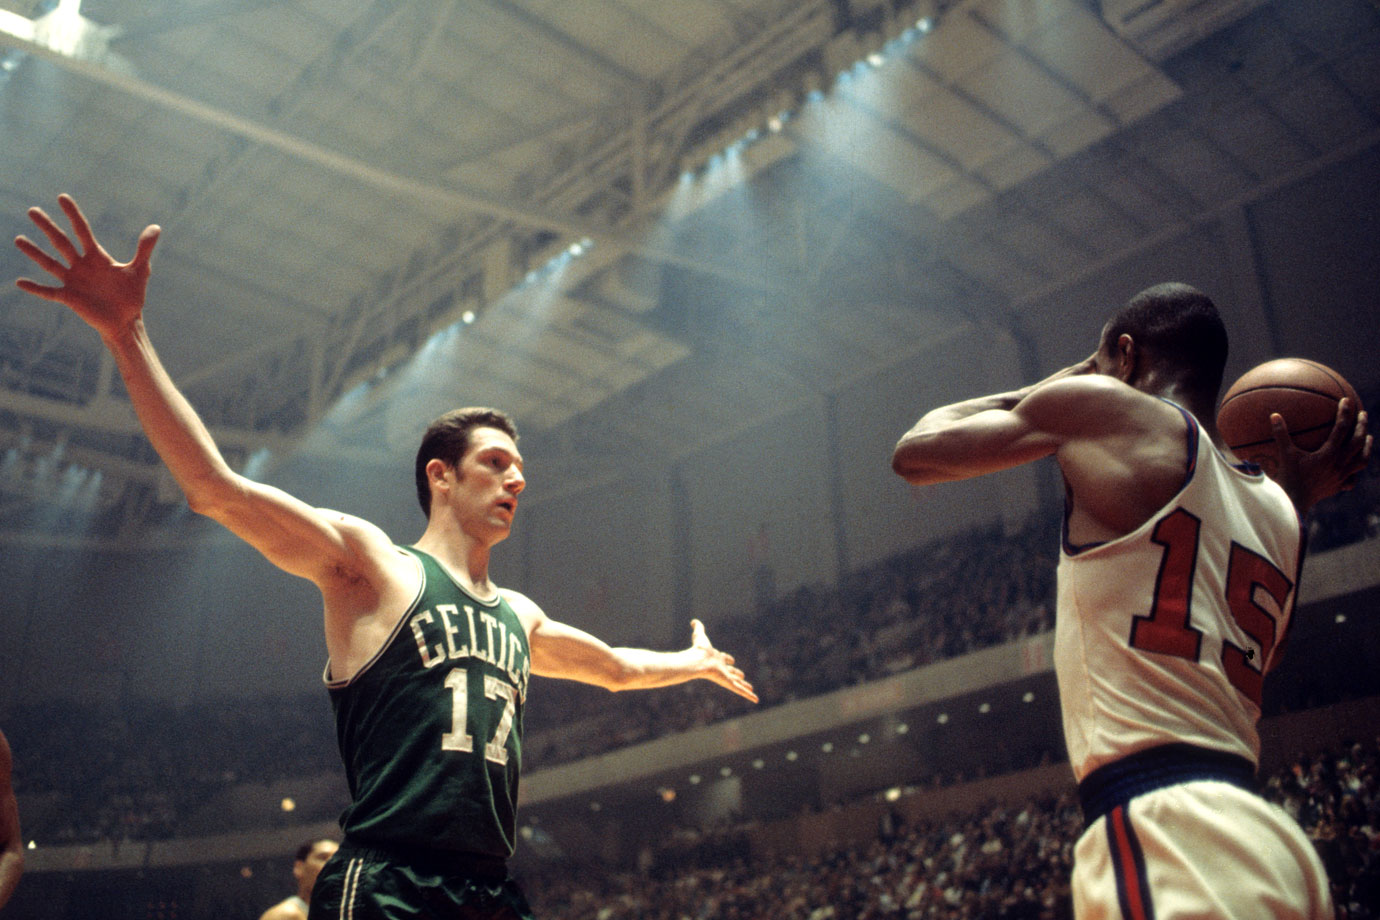 John Havlicek looks to defend an inbounds pass by Hal Greer, who was not looking to make the same mistake twice, during Game 1 at The Spectrum in Philadelphia. The Celtics won the game but lost the next three to the 76ers. However, Boston would become the first team in playoff history to come back from a 3-1 series deficit, winning the series and then their 10th championship, once again over the Lakers.